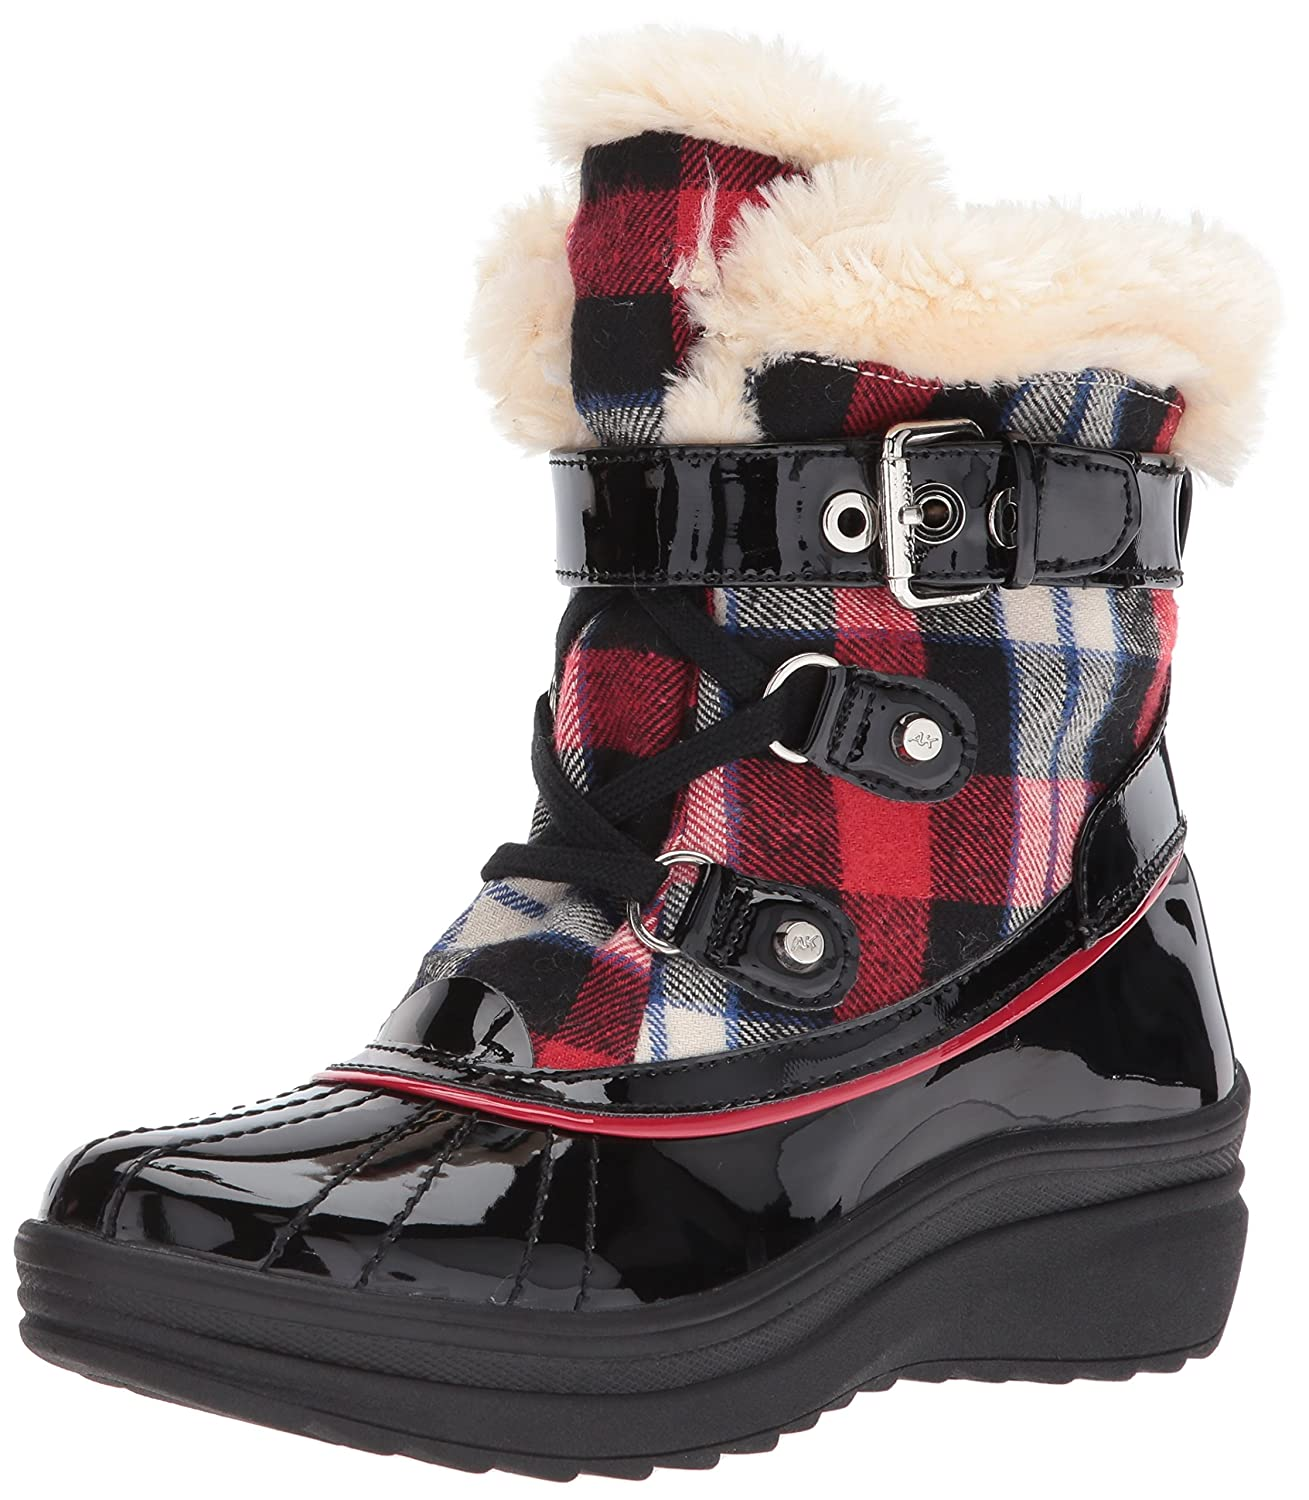 Anne Klein Women's Gallup Fabric Snow Shoe B072HP7JM7 6 B(M) US|Red/Multi Fabric